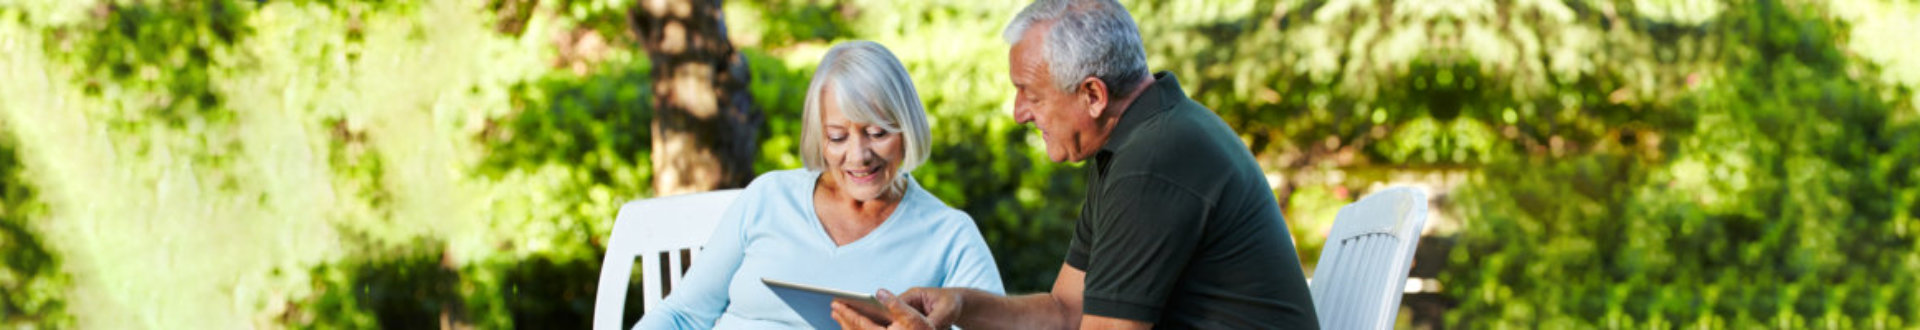 senior couple looking at a tablet